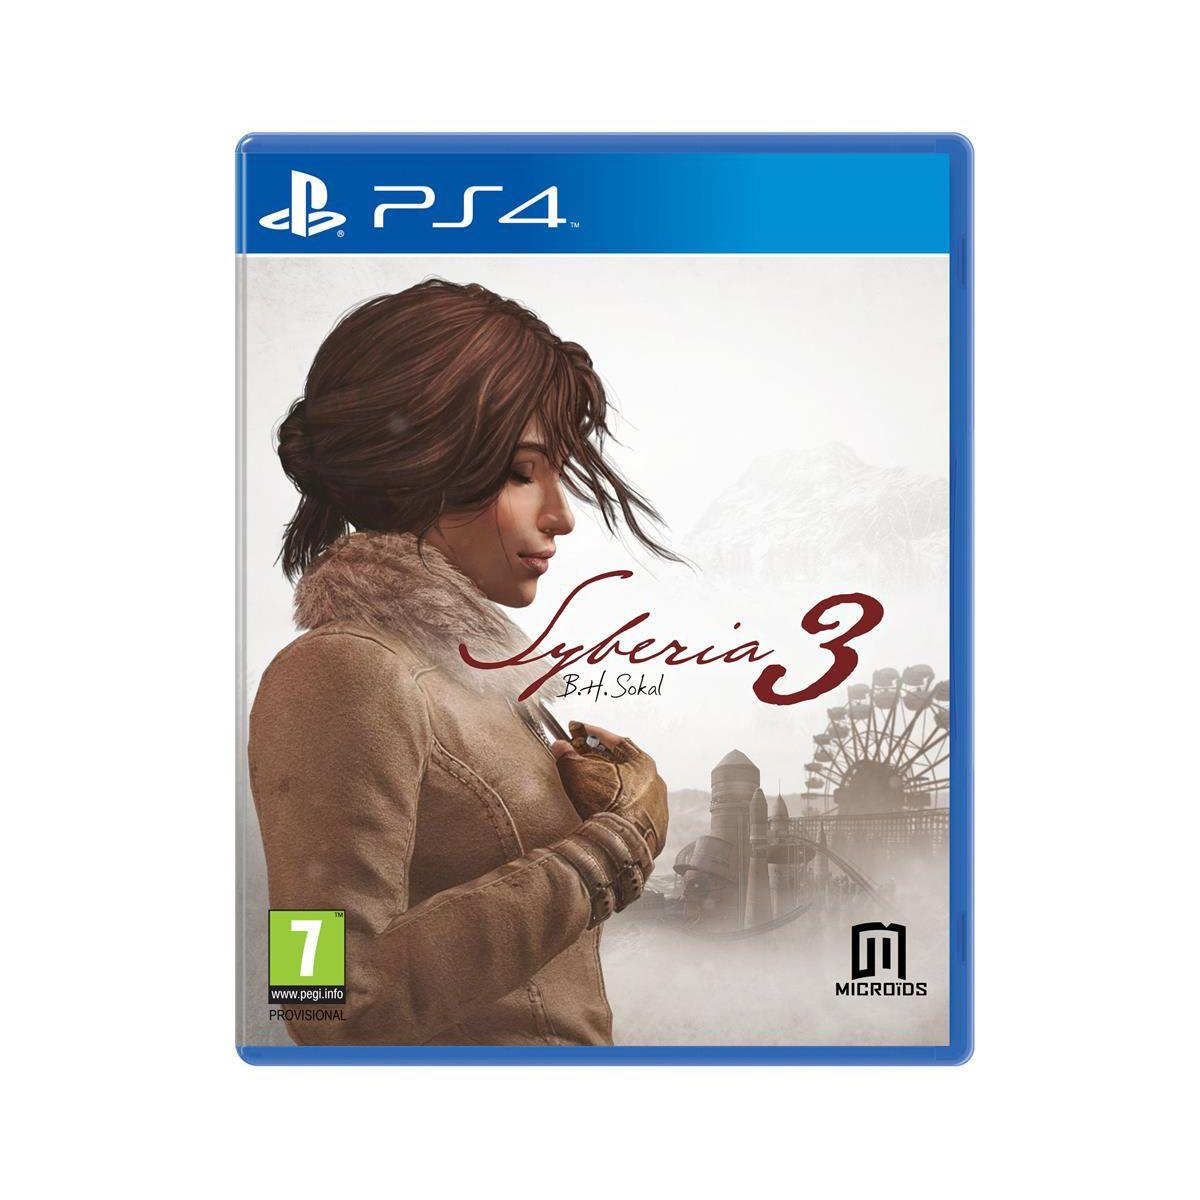 Jeu ps4 just for games syberia 3 - 2% de remise immédiate avec le code : cool2 (photo)